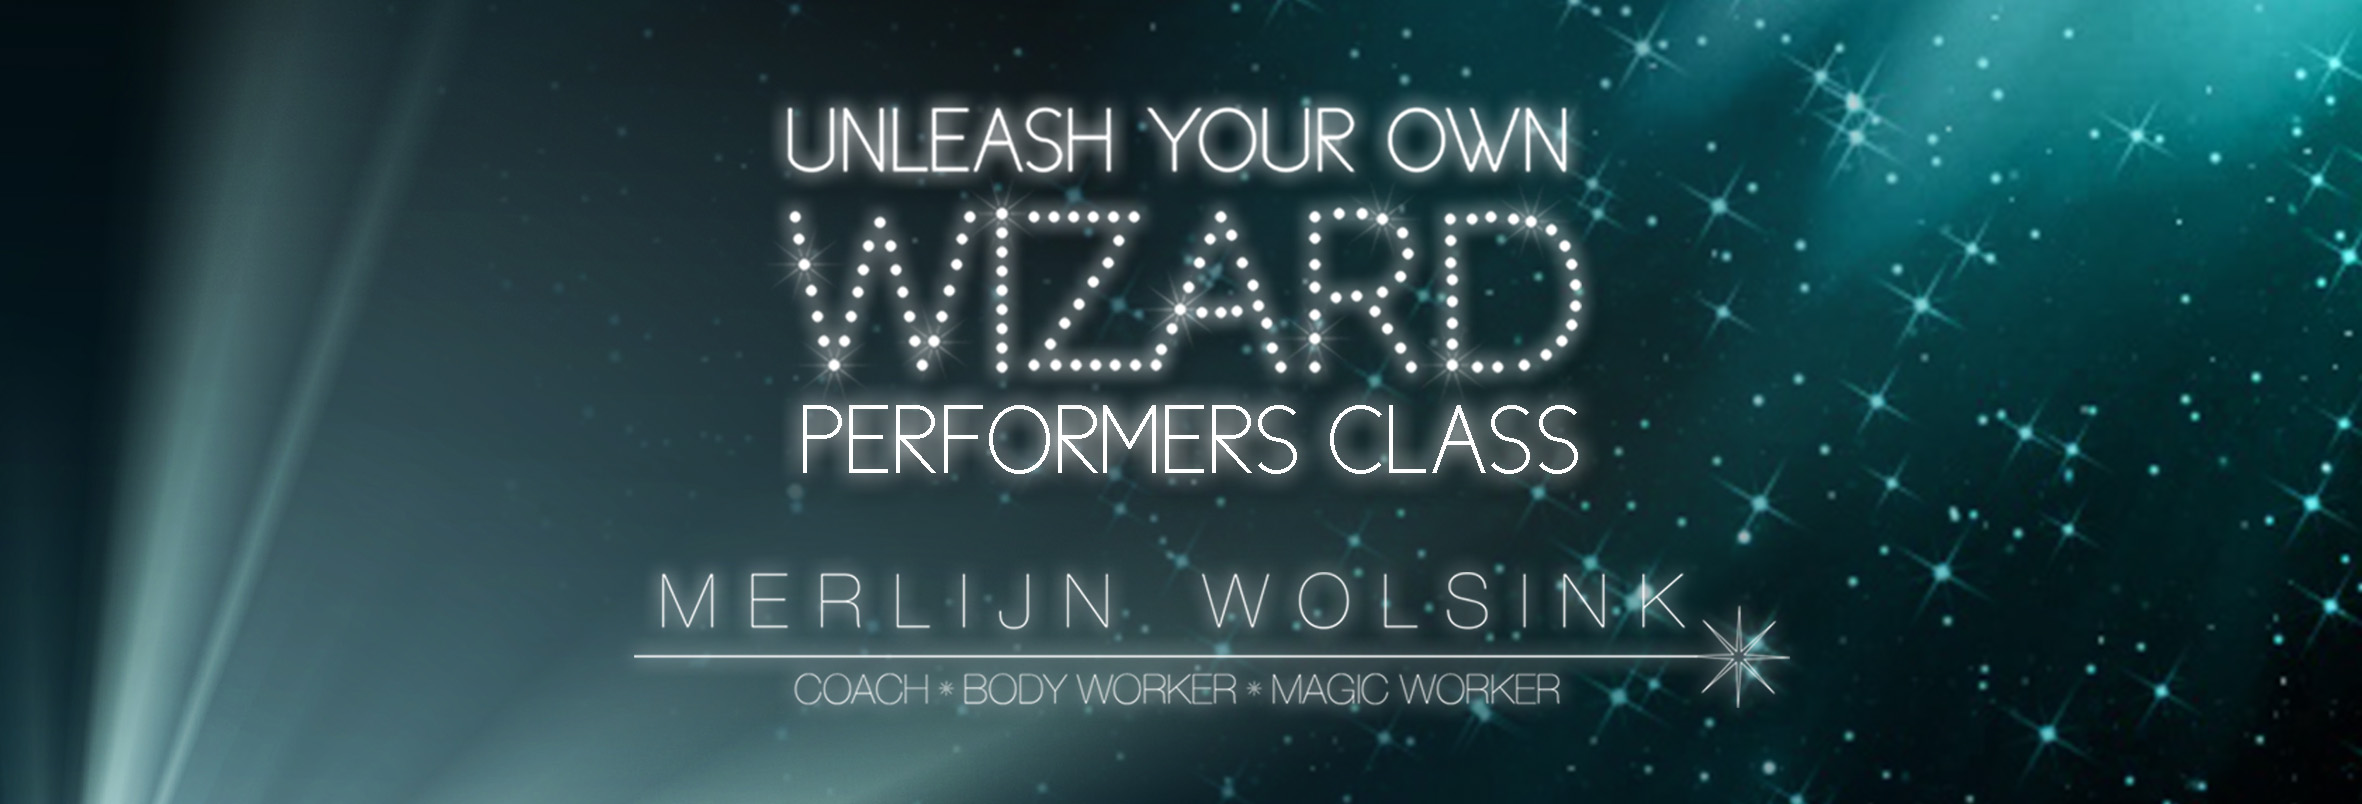 Merlijn Wolsink - Unleash Your Own Wizard - Performers Class